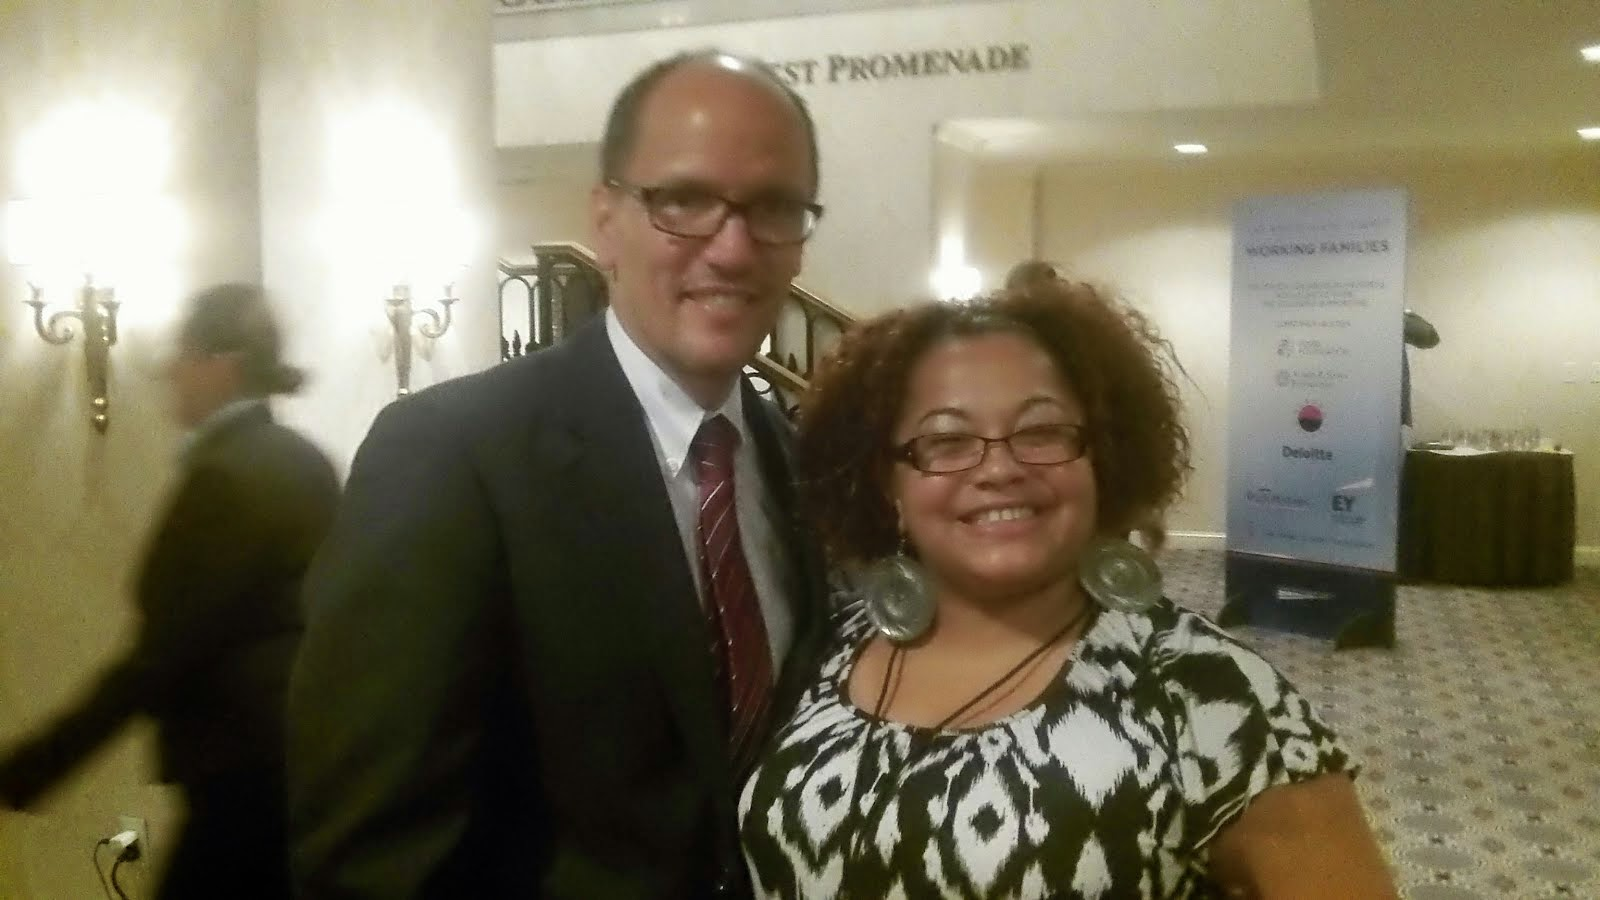 Secretary of Labor Thomas Perez @ White House Summit for working families